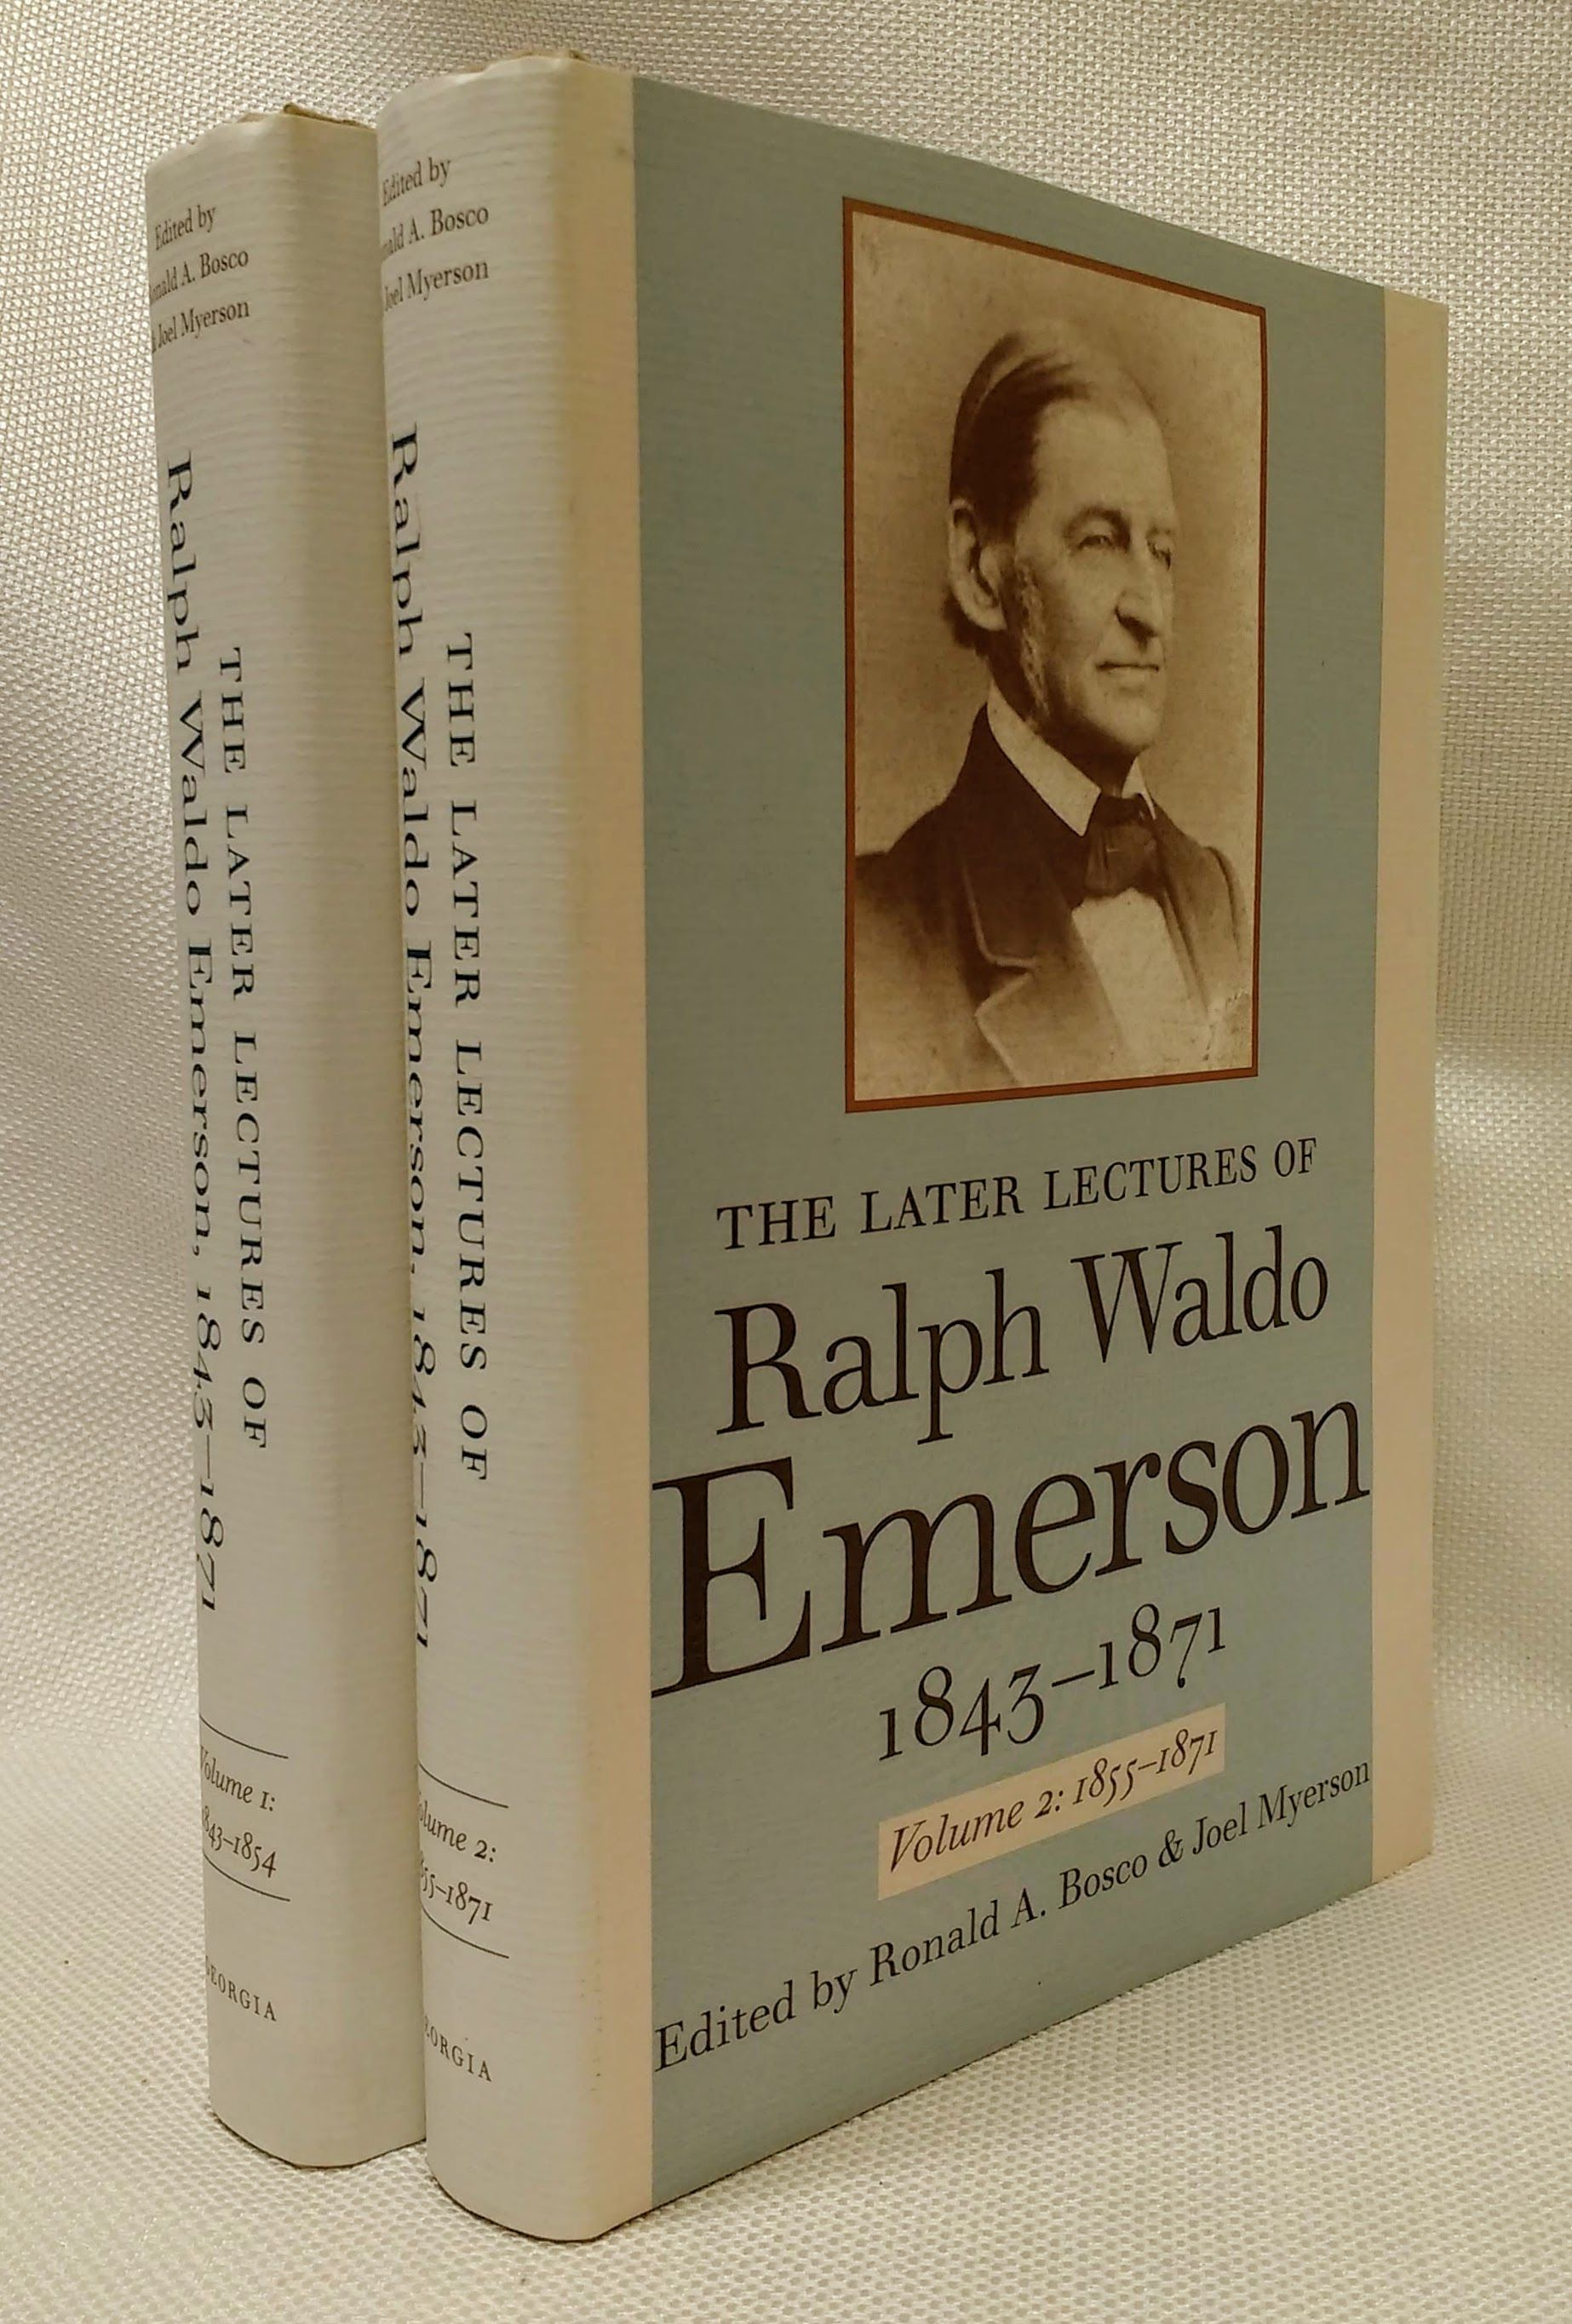 The Later Lectures of Ralph Waldo Emerson, 1843 - 1871 (Two Volumes)), Emerson, Ralph; Myerson, Joel [Editor]; Bosco, Ronald [Editor];